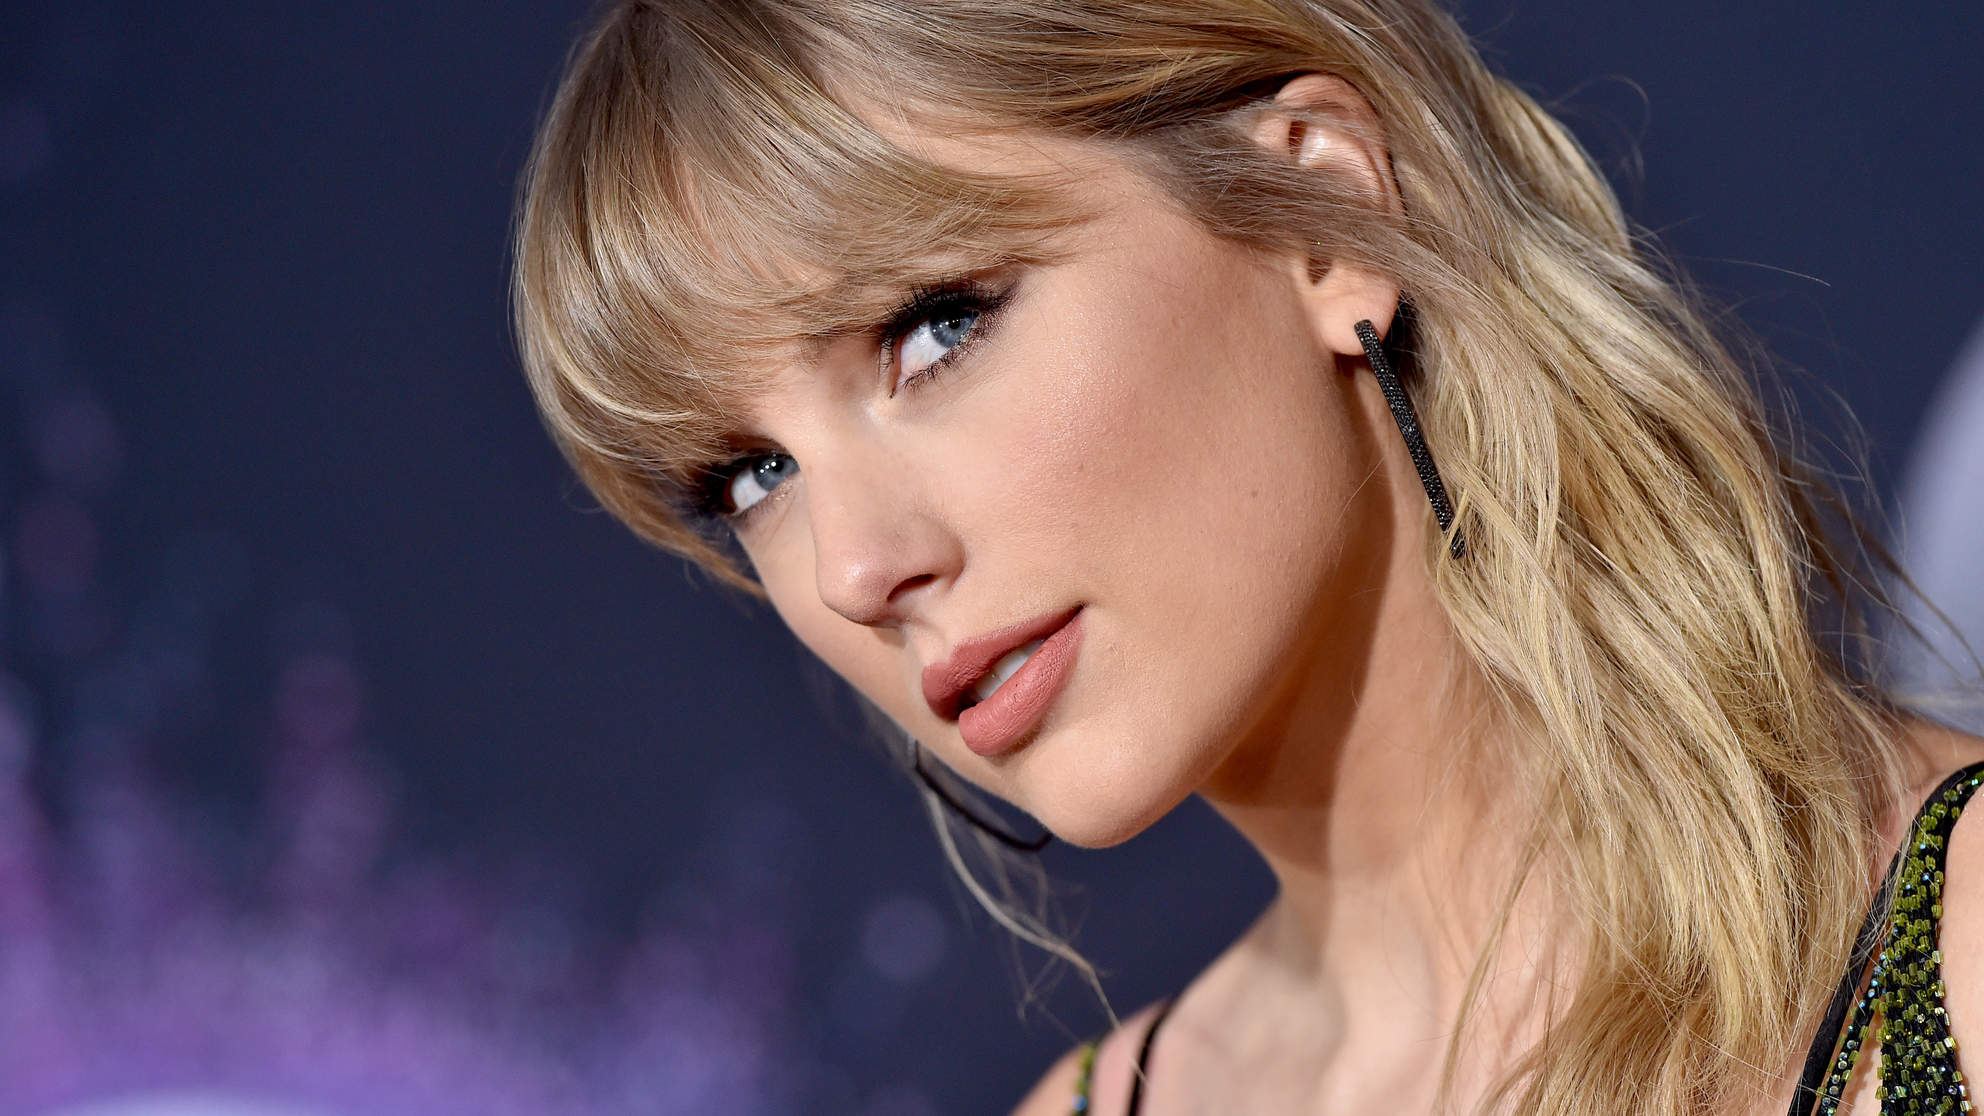 Taylor Swift Hairstyle Trends 2020